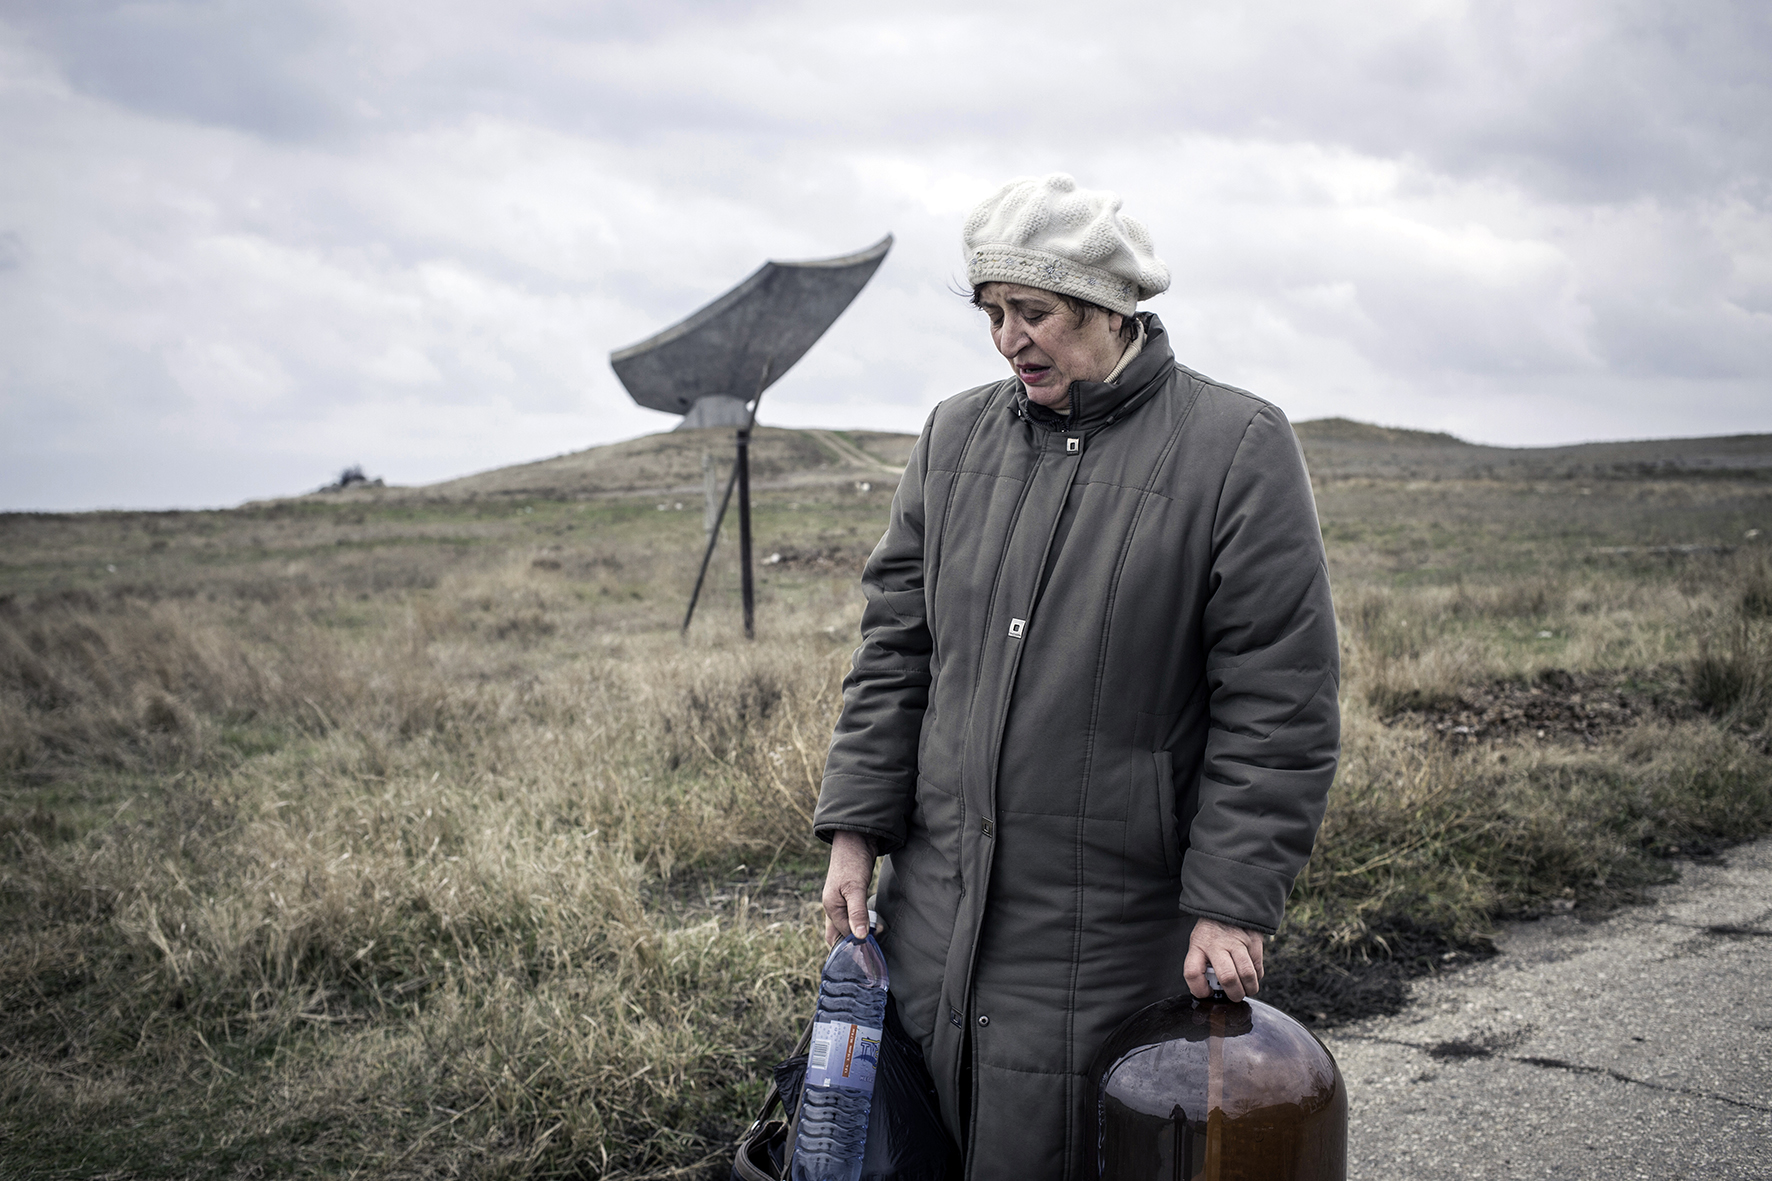 Woman in a village near Kerch, carrying home canisters with drinking water, Crimea, 2014